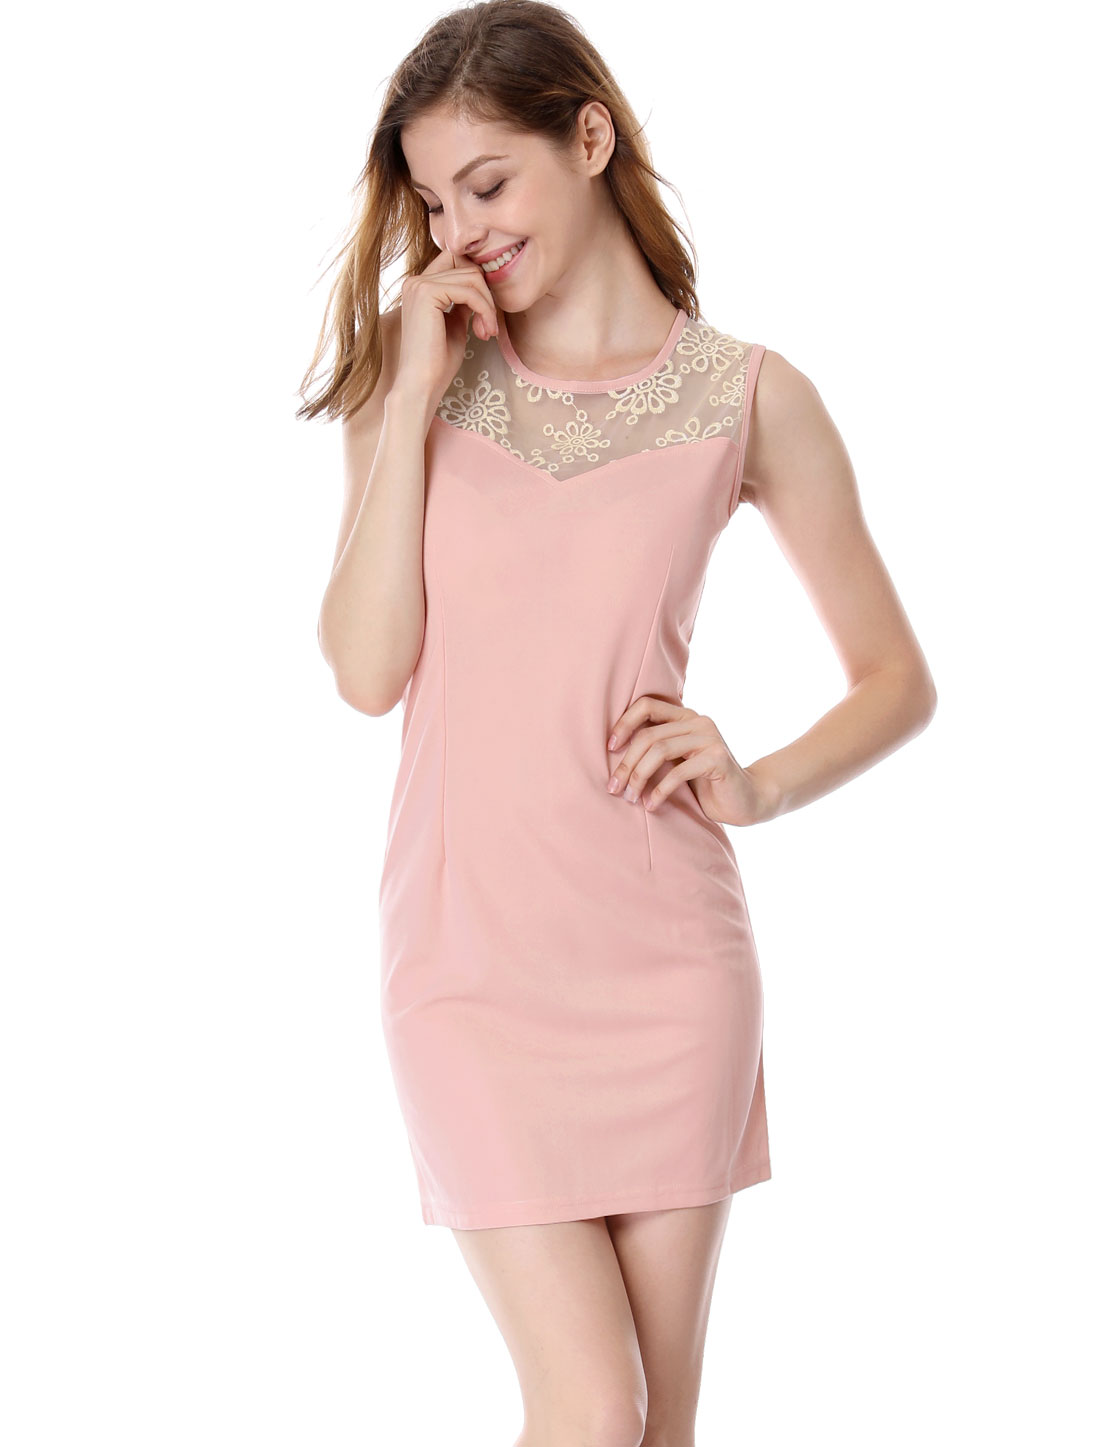 Women Chic Pale Pink Concealed Zip-Up Back Slim Fit Mini Dress XL